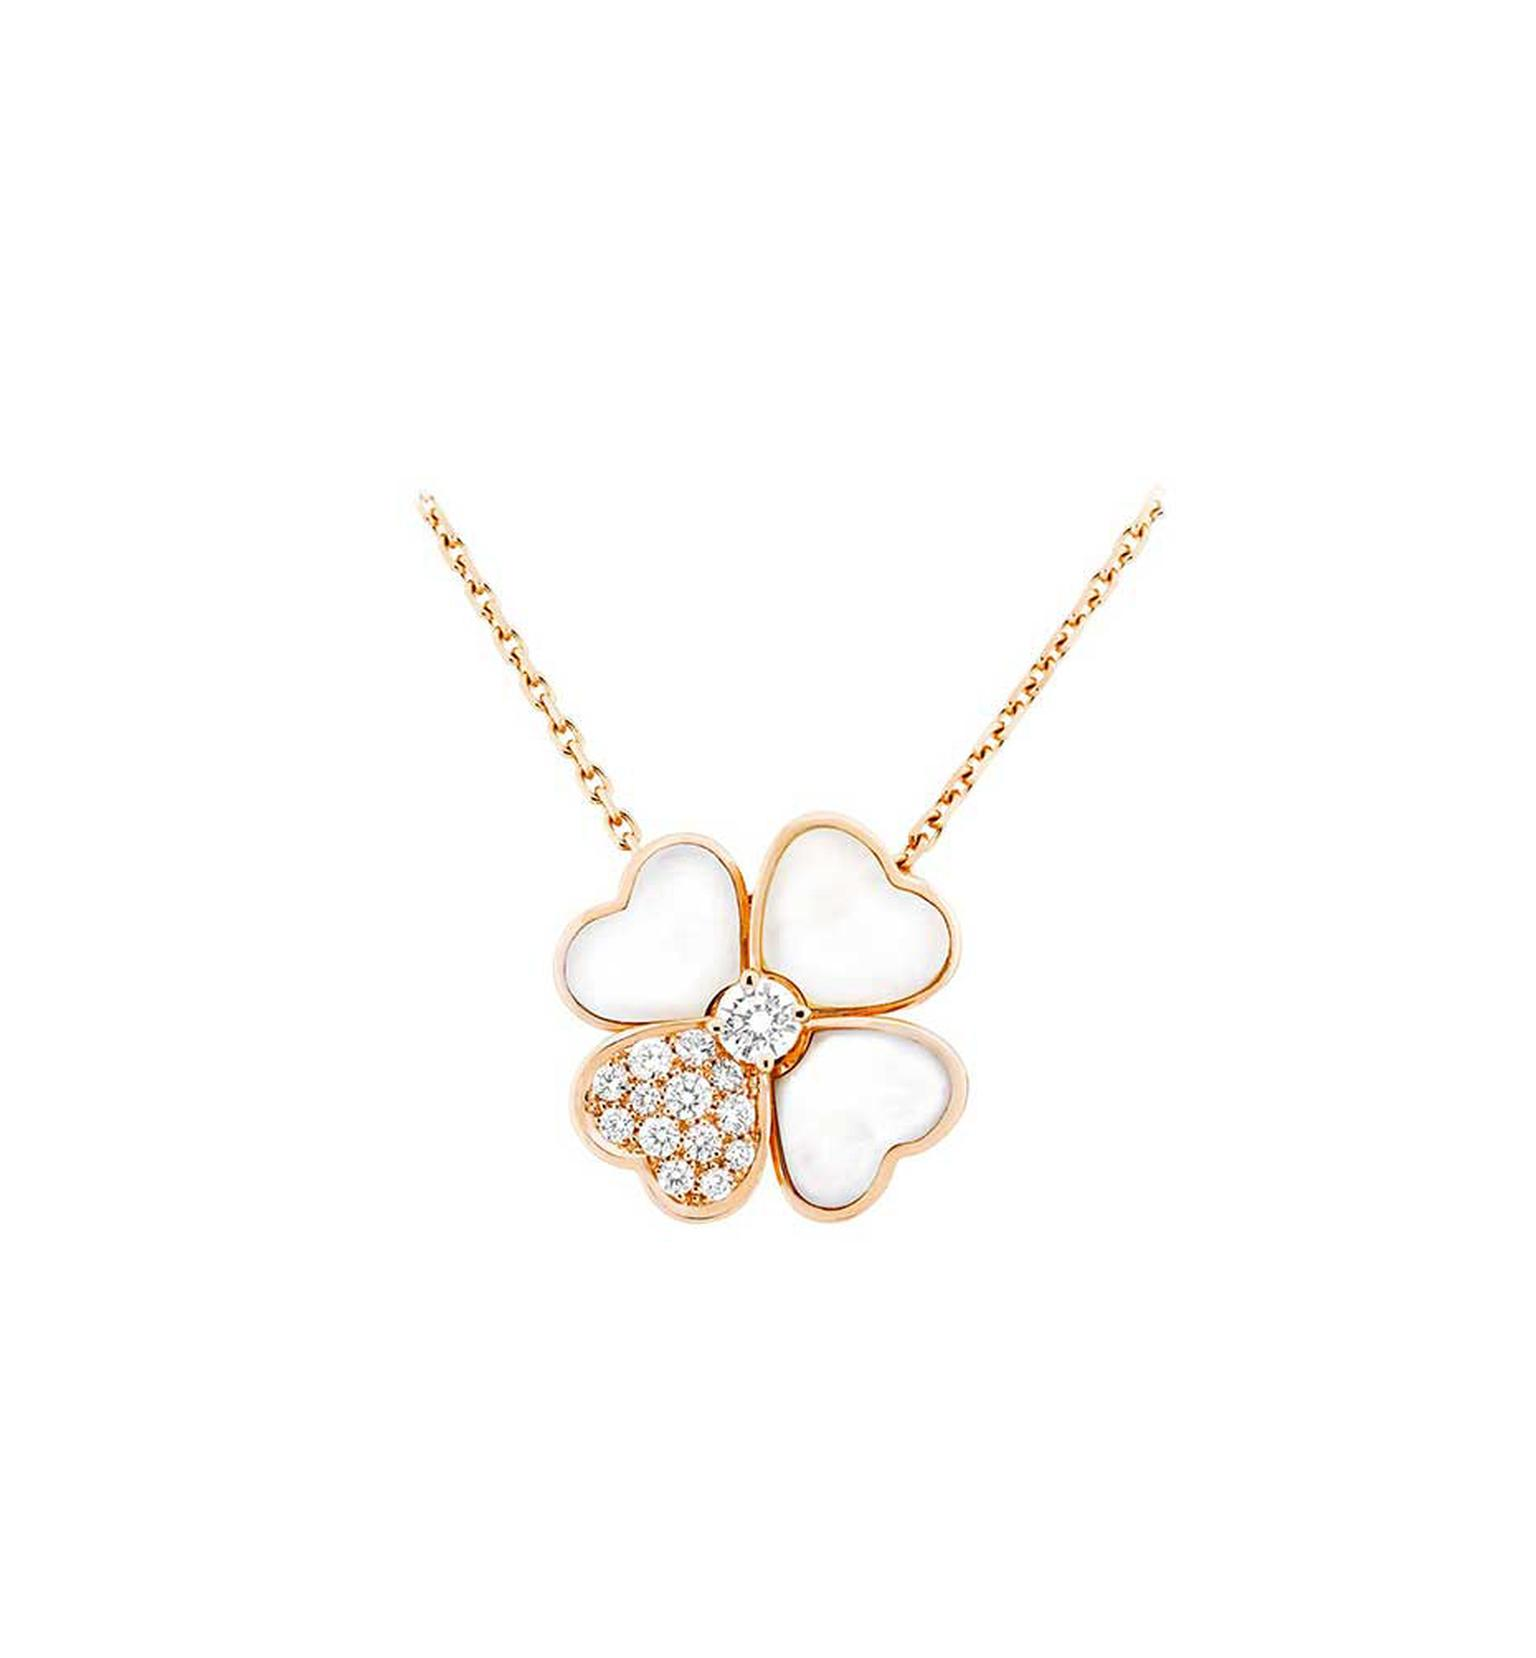 Van Cleef & Arpels Cosmos necklace in rose gold with a brilliant-cut diamond bud surrounded by white mother-of-pearl and diamond petals